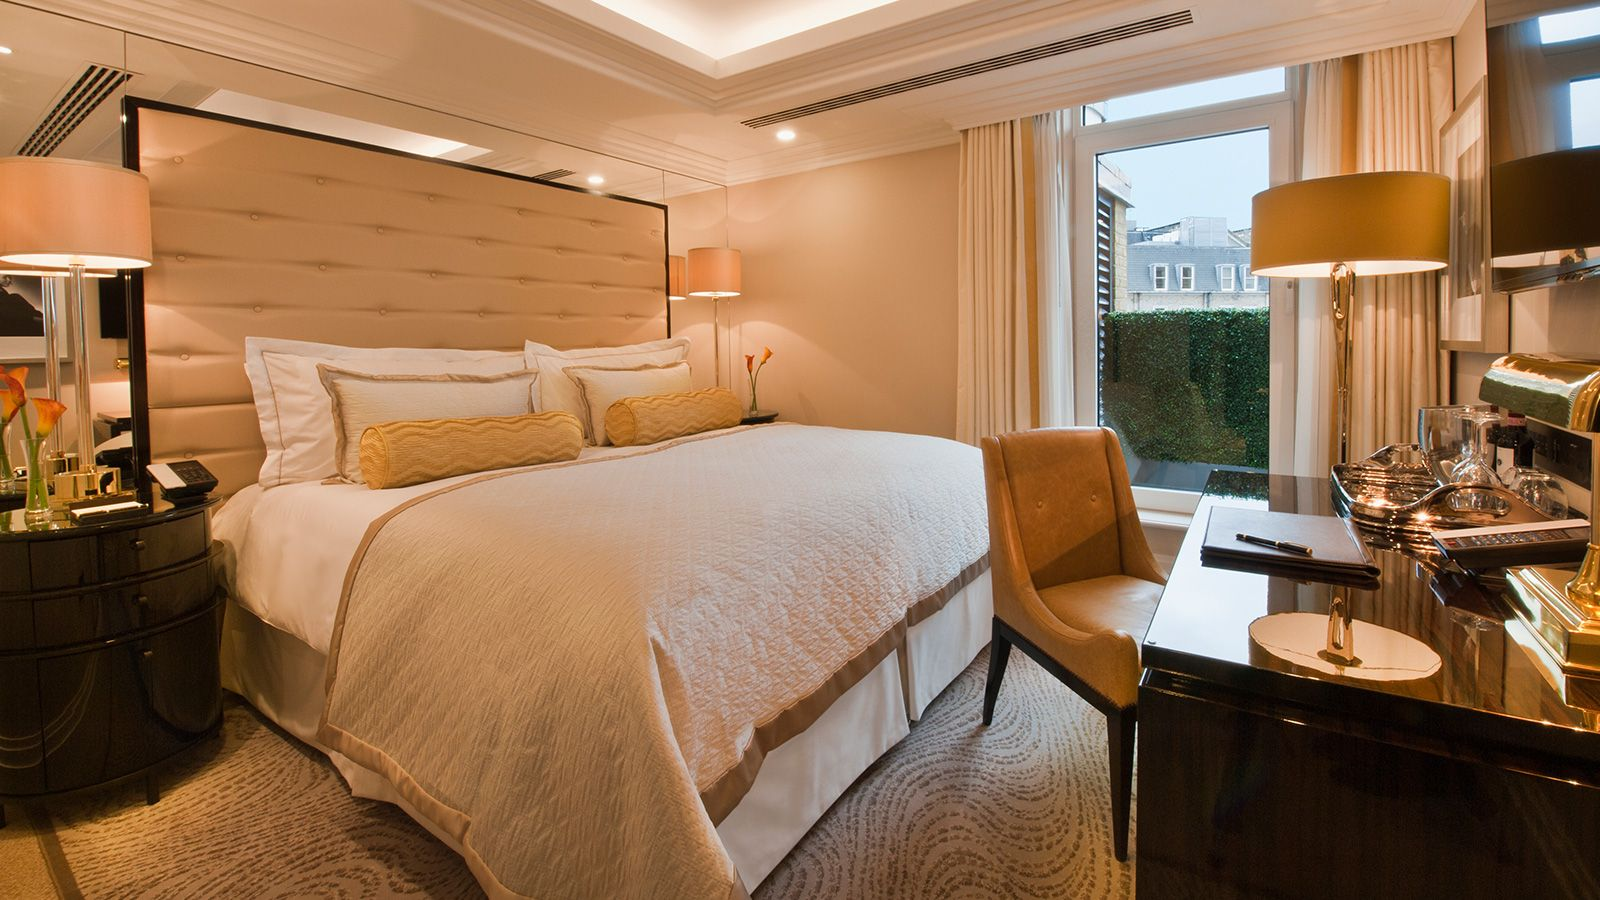 Deluxe King Room at The Wellesley Knightsbridge